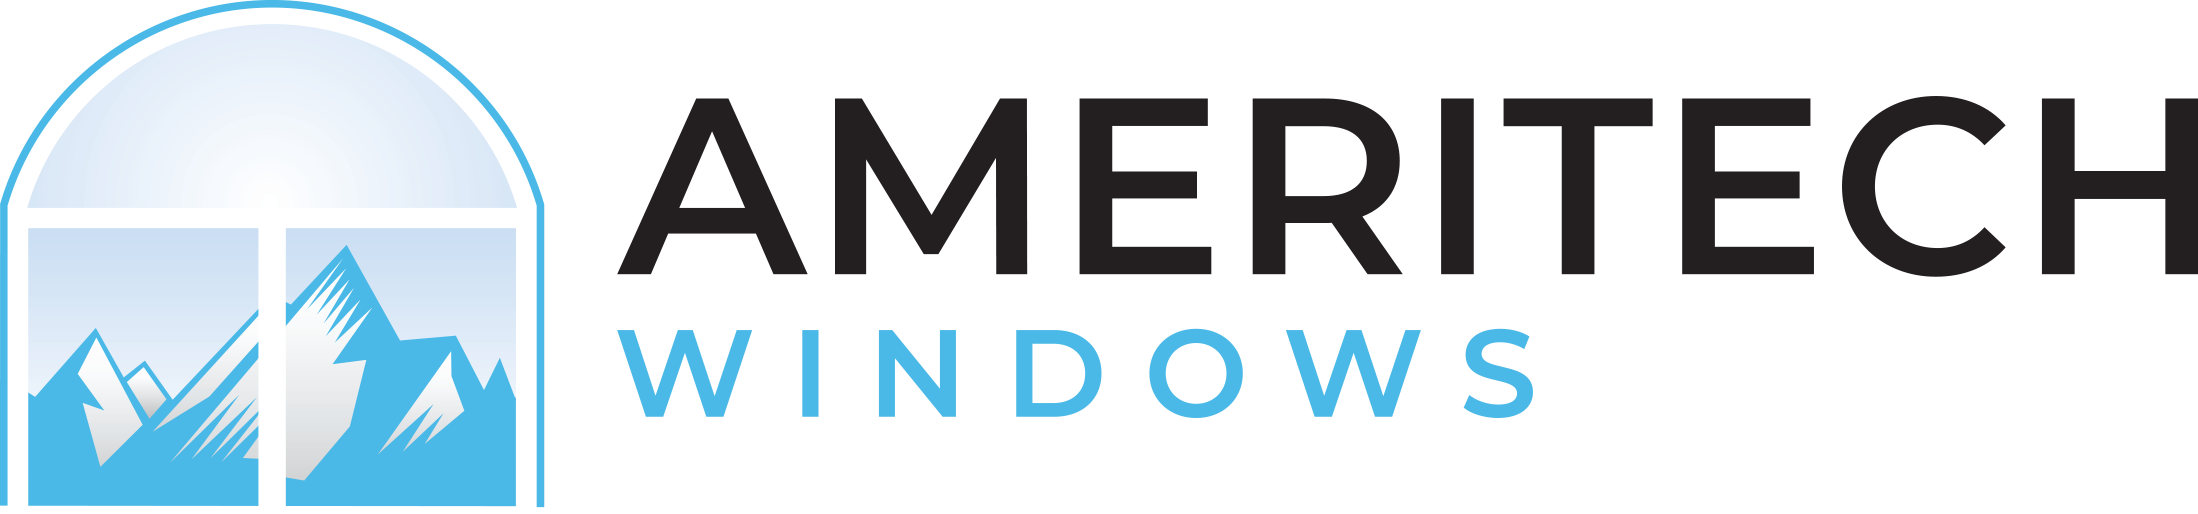 Ameritech Windows image